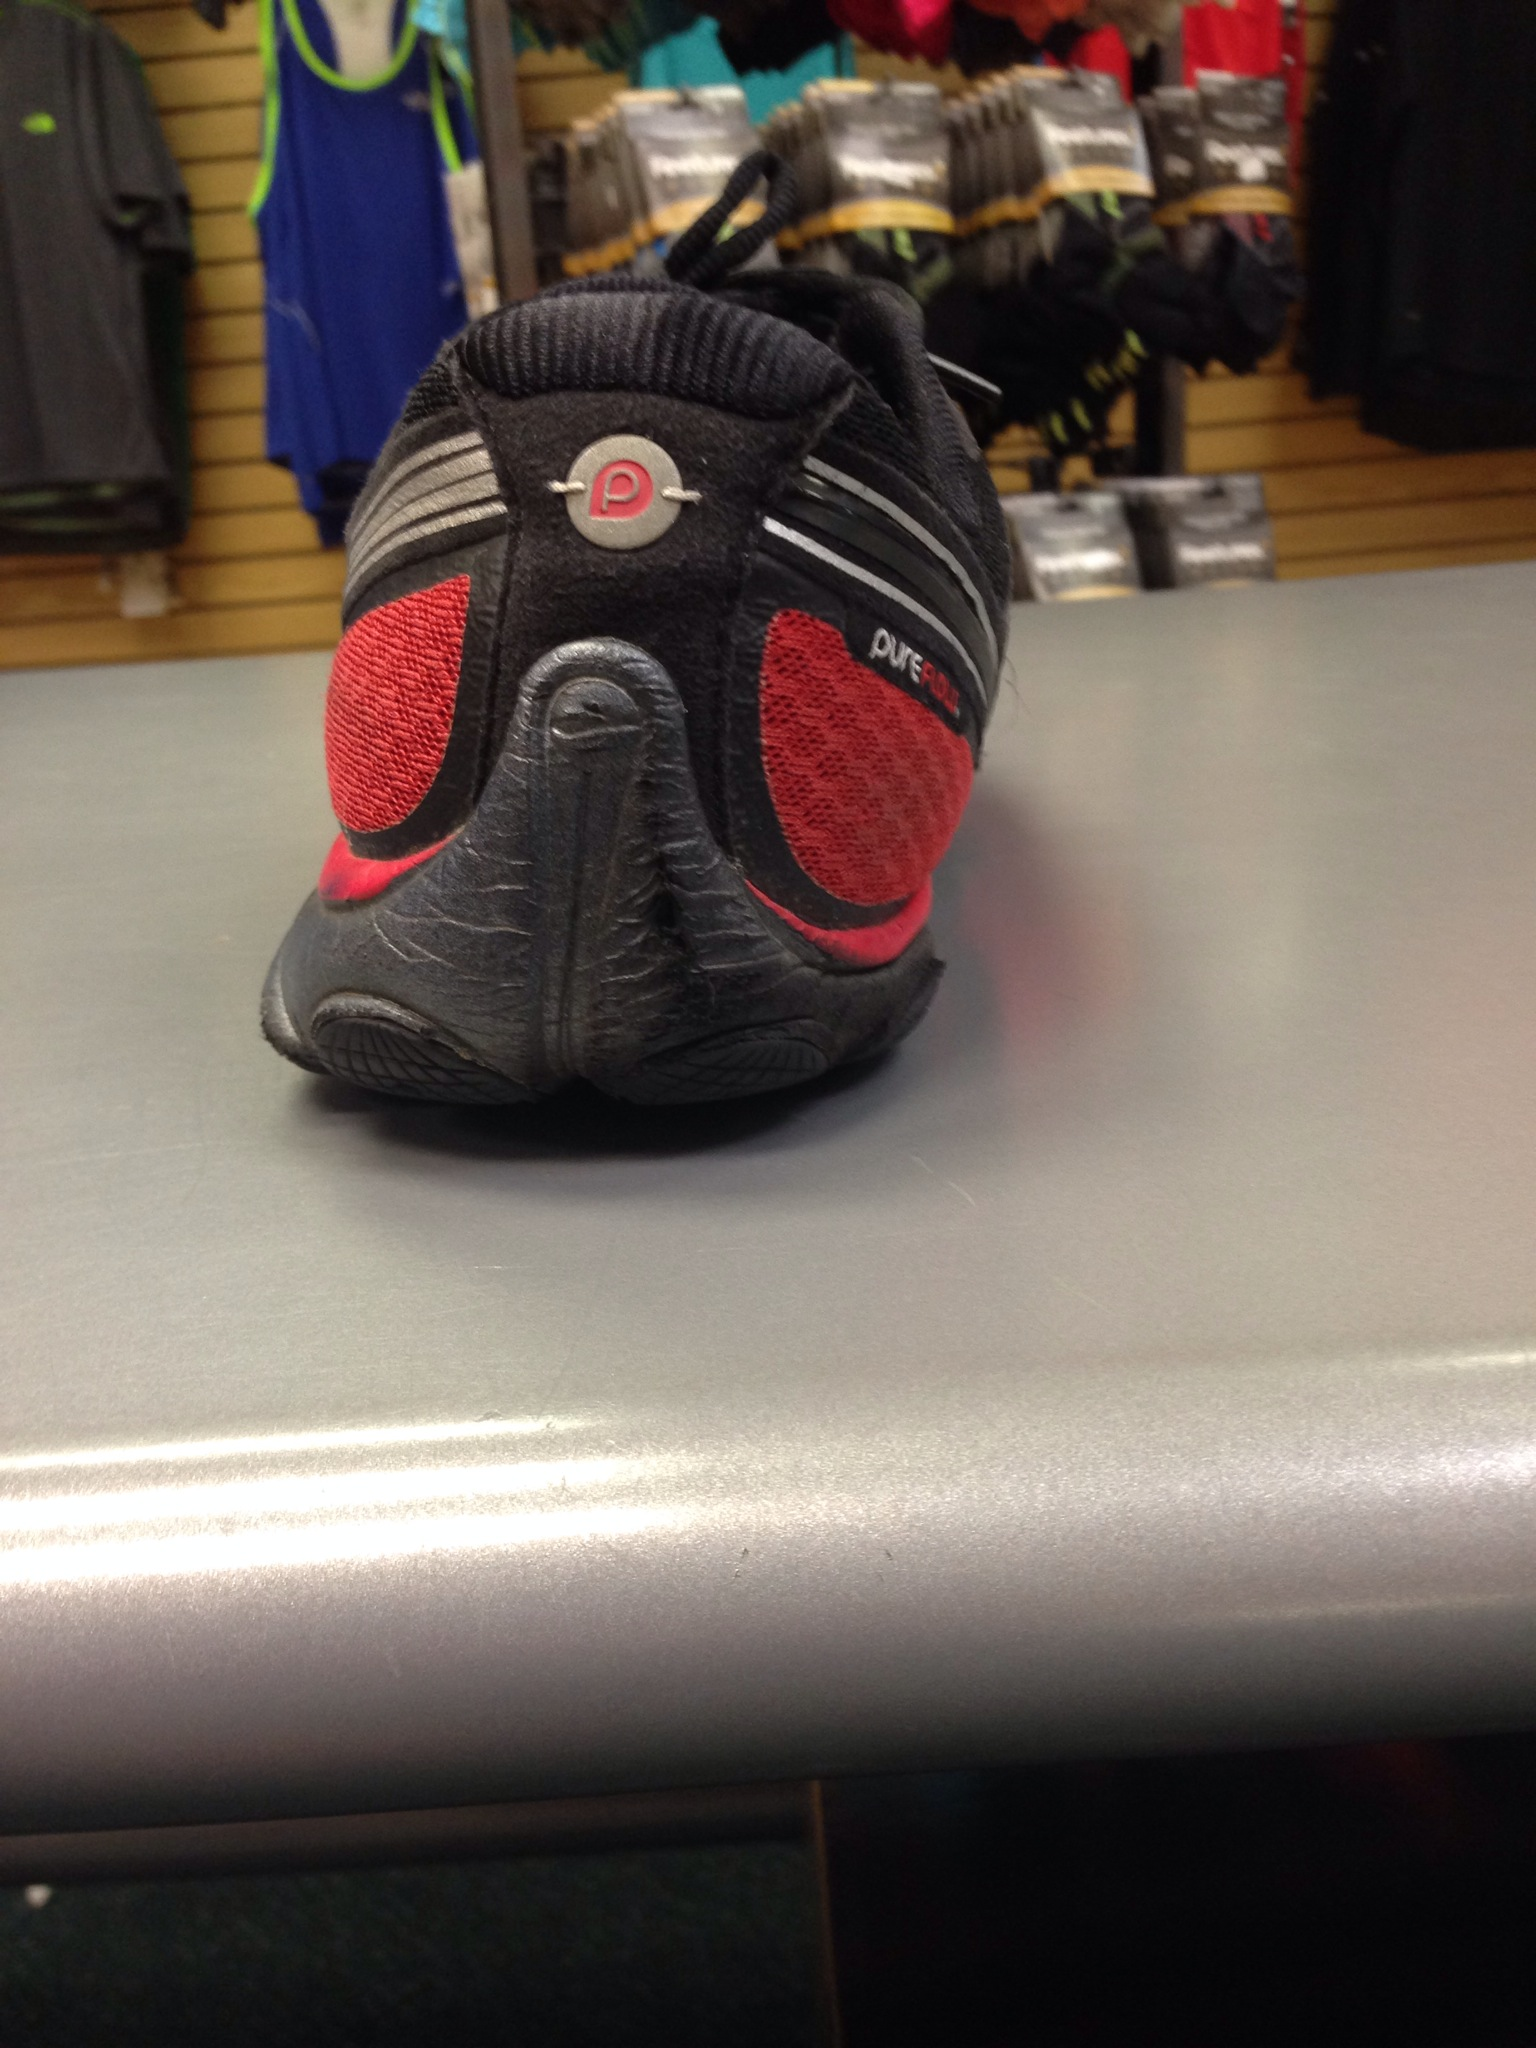 9999138d5c3 ... back to where I purchased them  the Running Company of Morristown